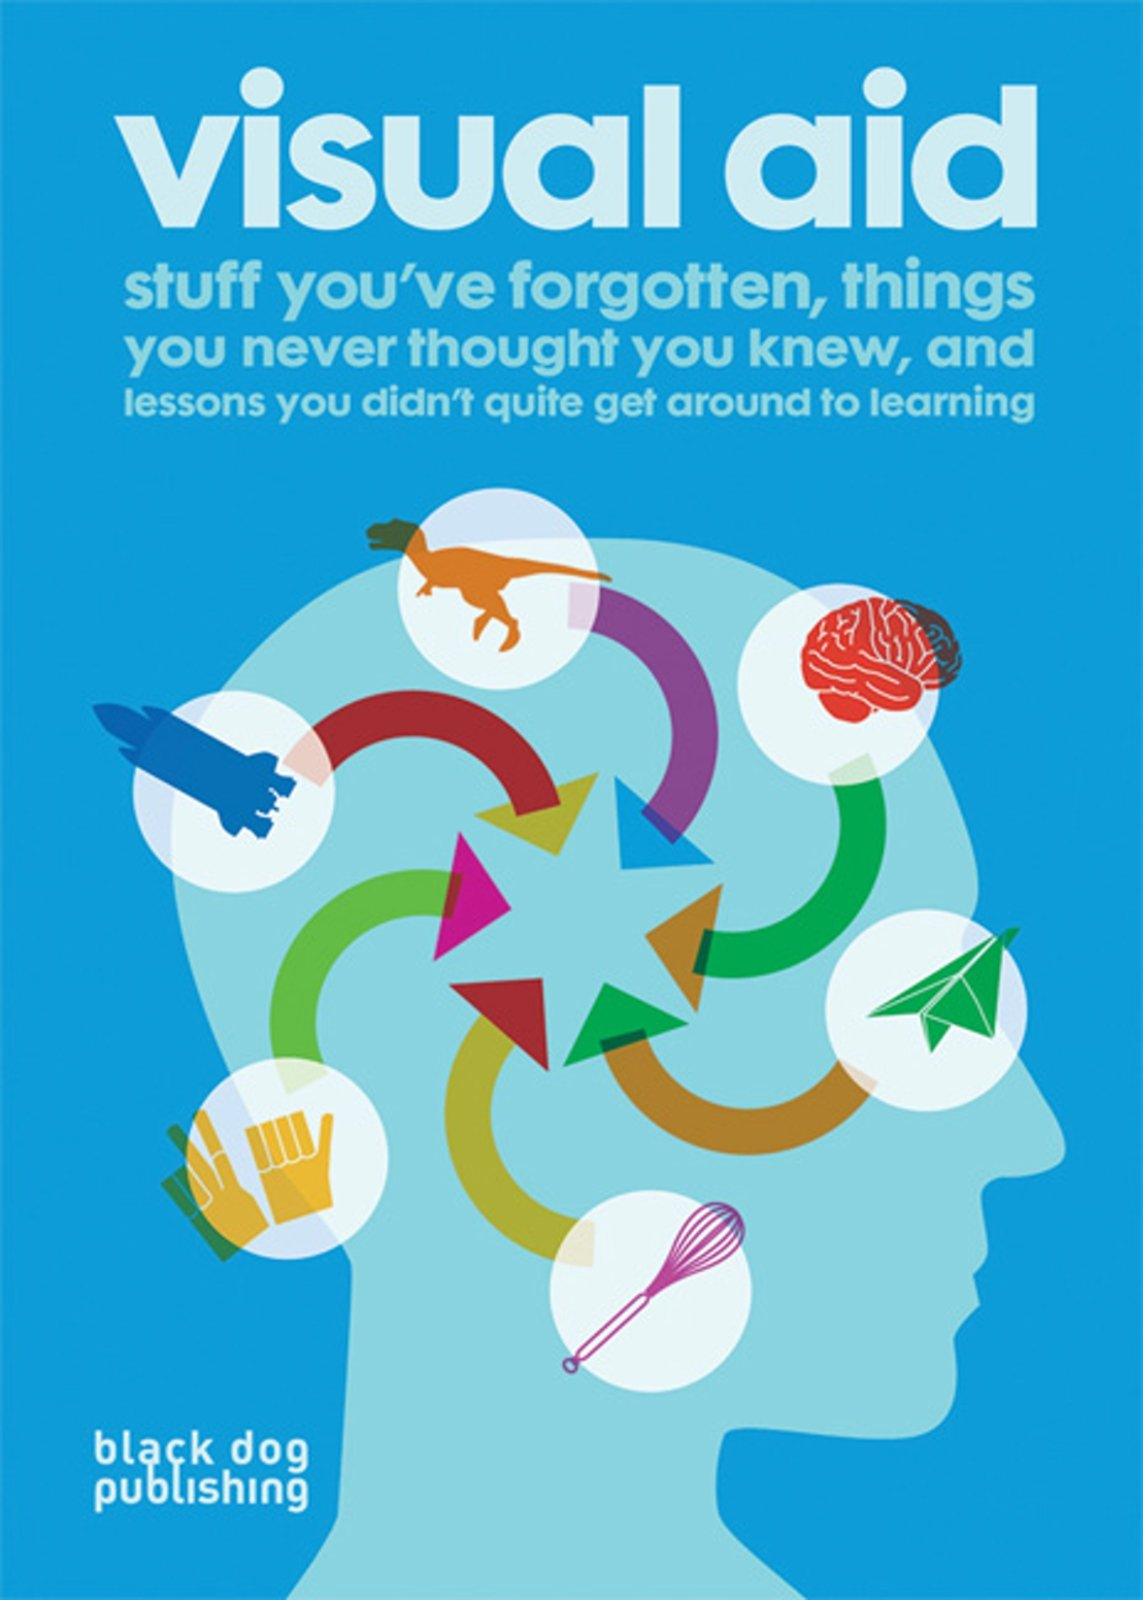 Visual Aid: Stuff You've Forgotten, Things You Never Thought You Knew And  Lessons You Didn't Quite Get Around To Learning (e): Amazon: Duncan